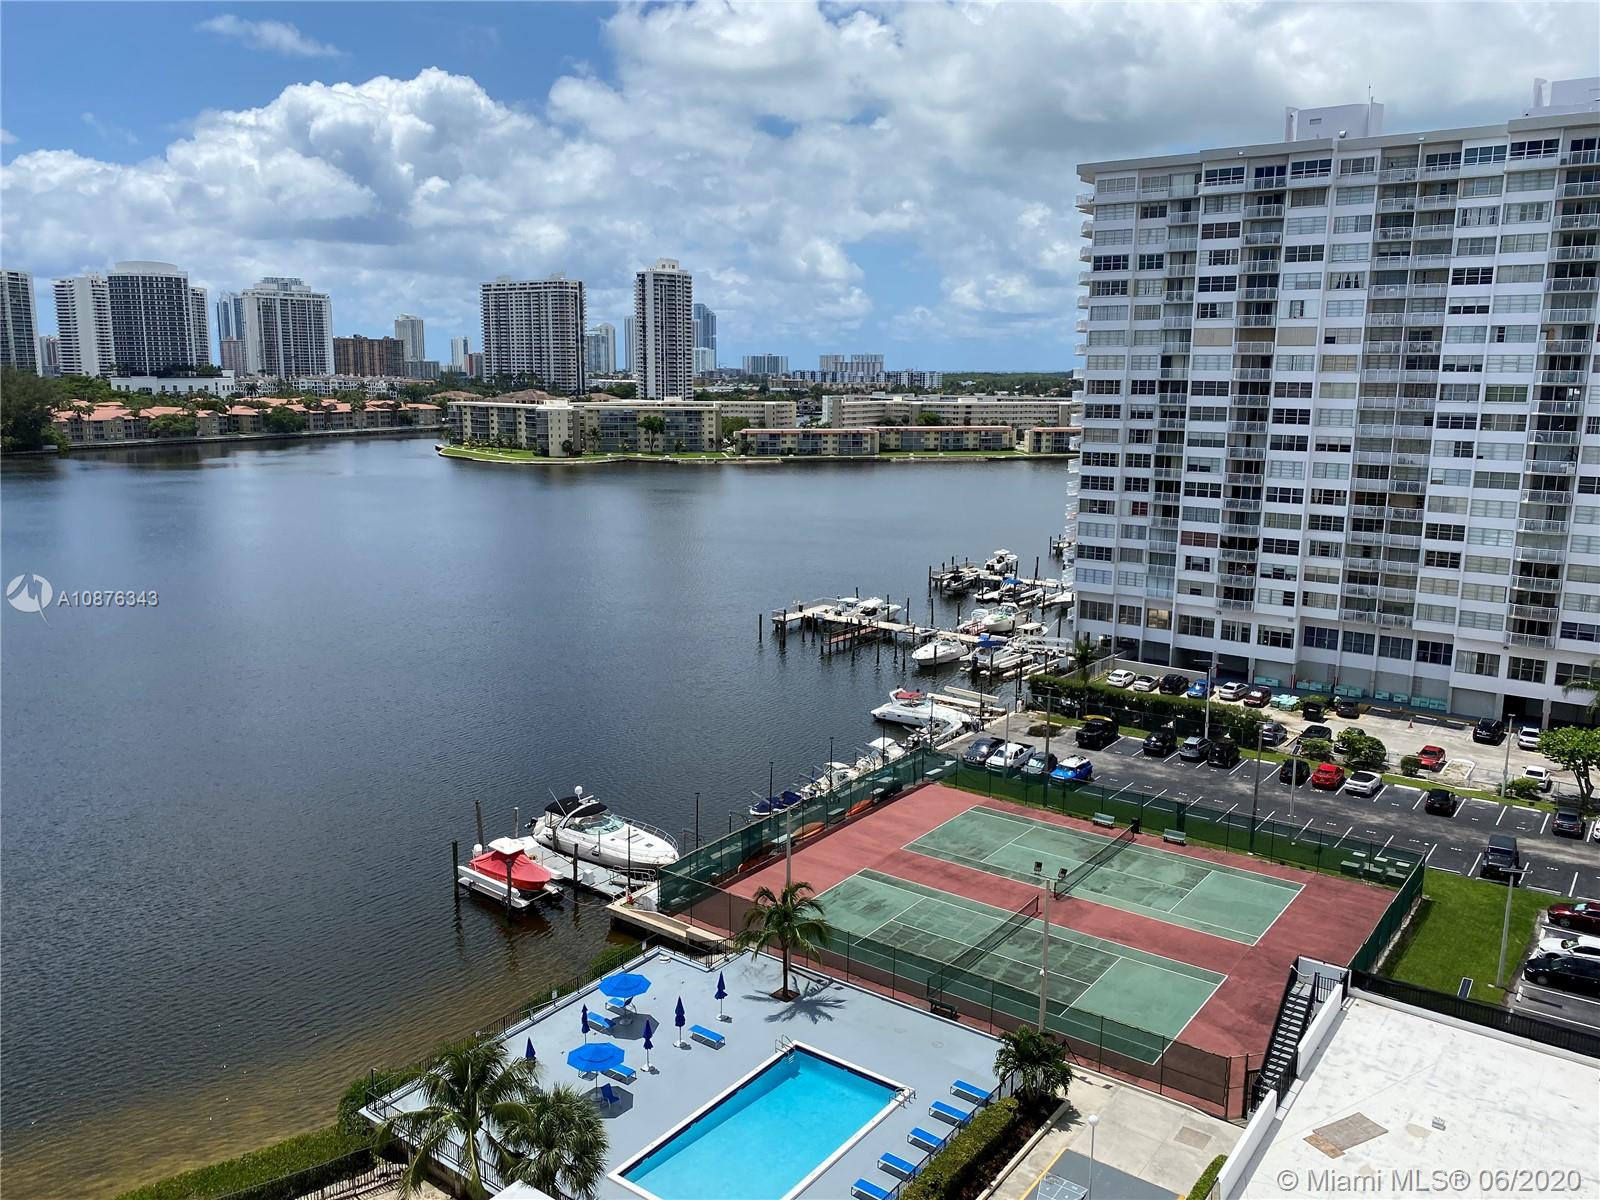 2780 NE 183rd St #1208 For Sale A10876343, FL